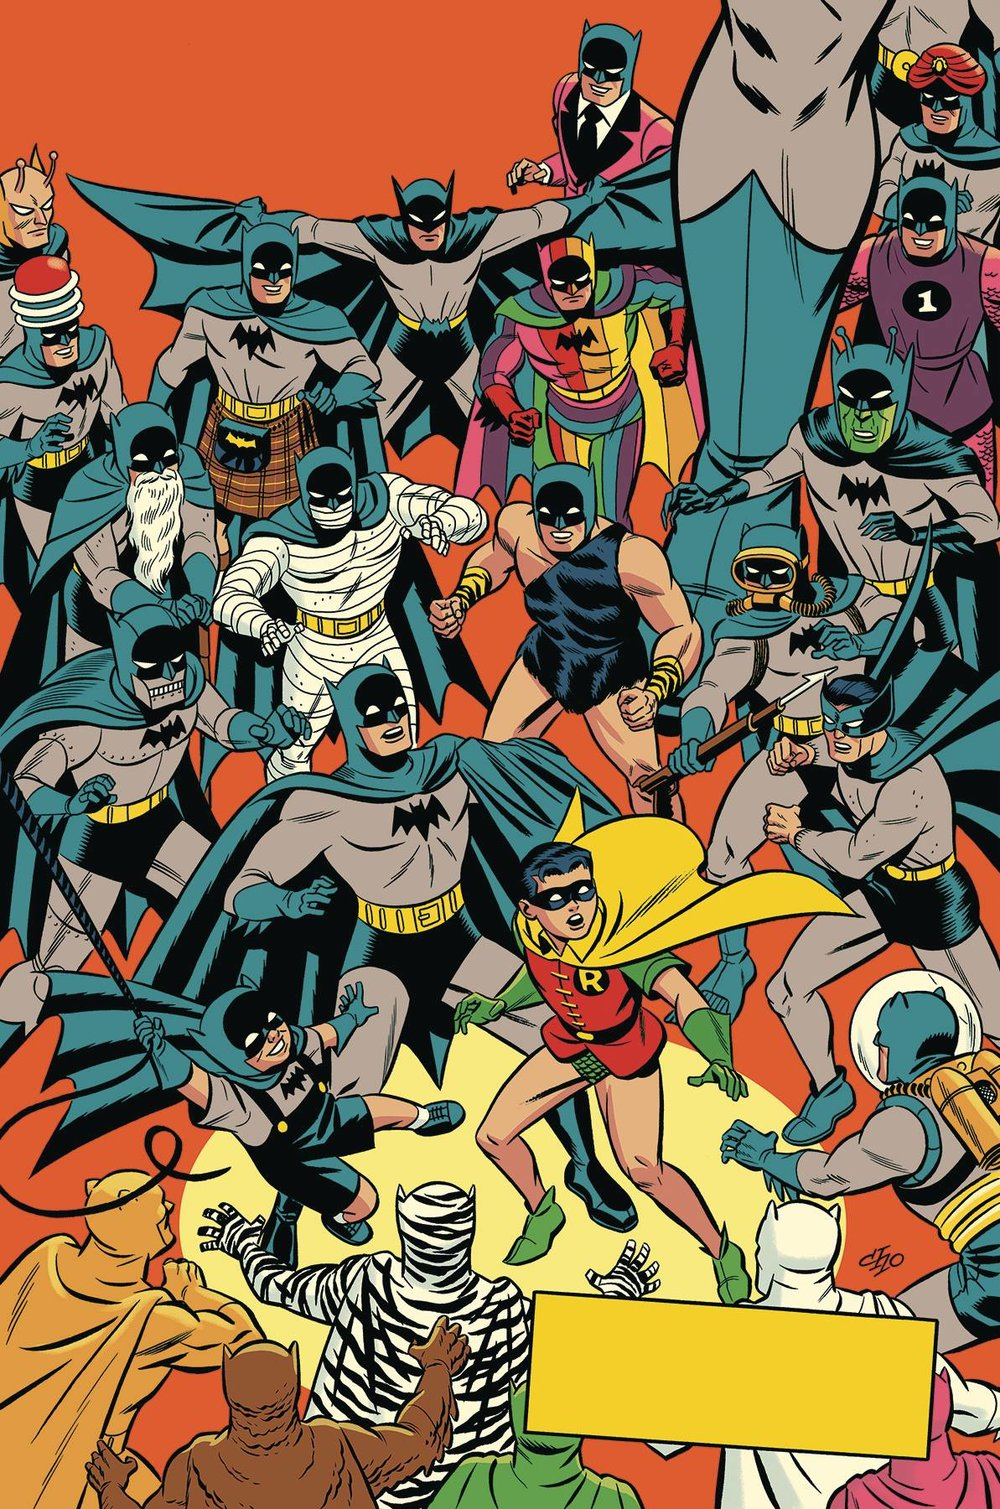 D. Detective Comics #1000 1950s Variant by Michael Cho -